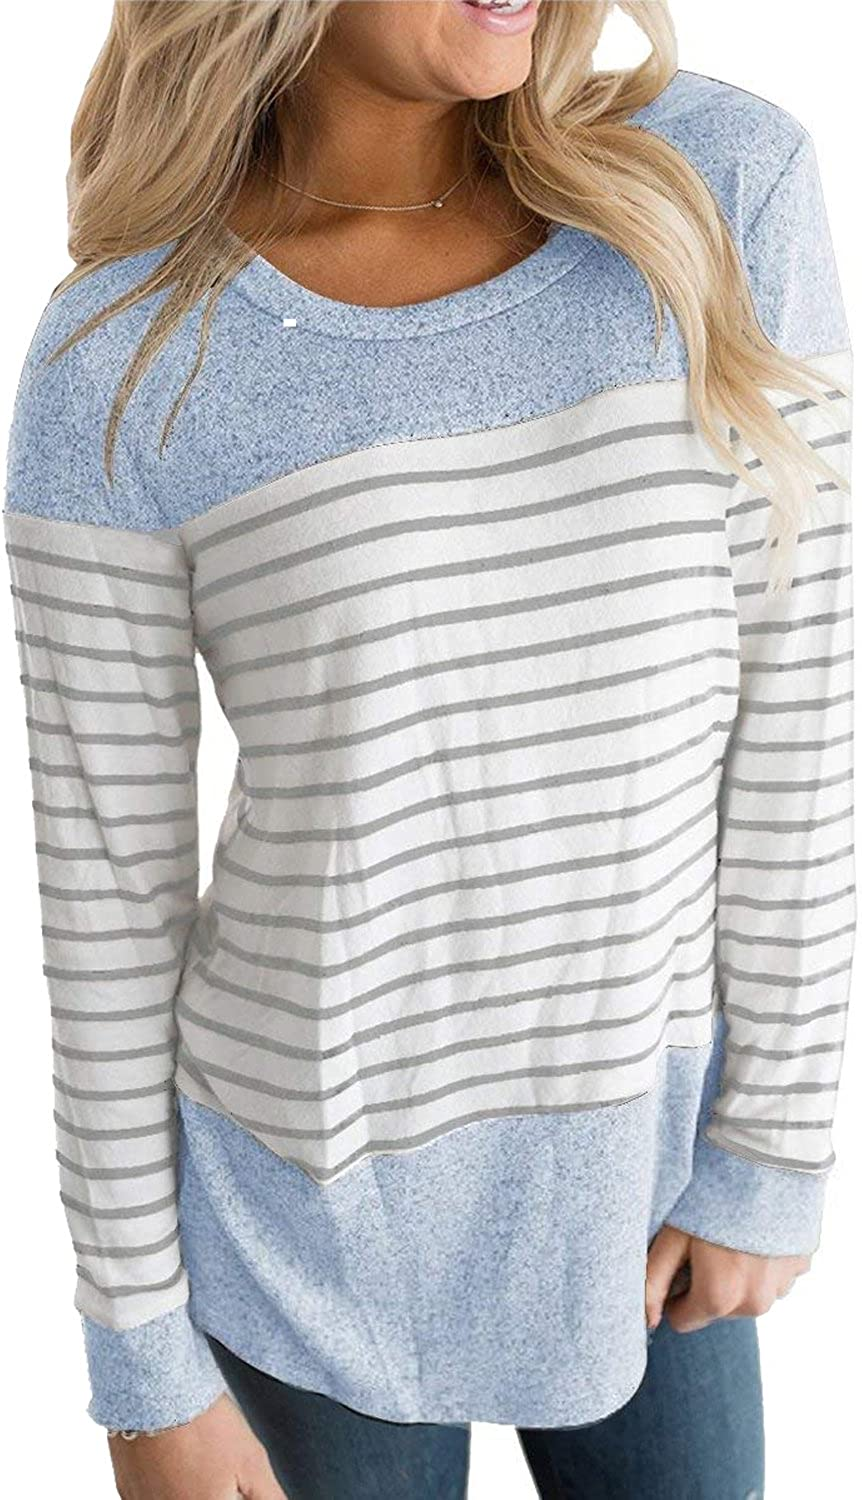 Hount Women's Round Neck Long Sleeve Blouse Shirts Casual Striped Tunic Tops